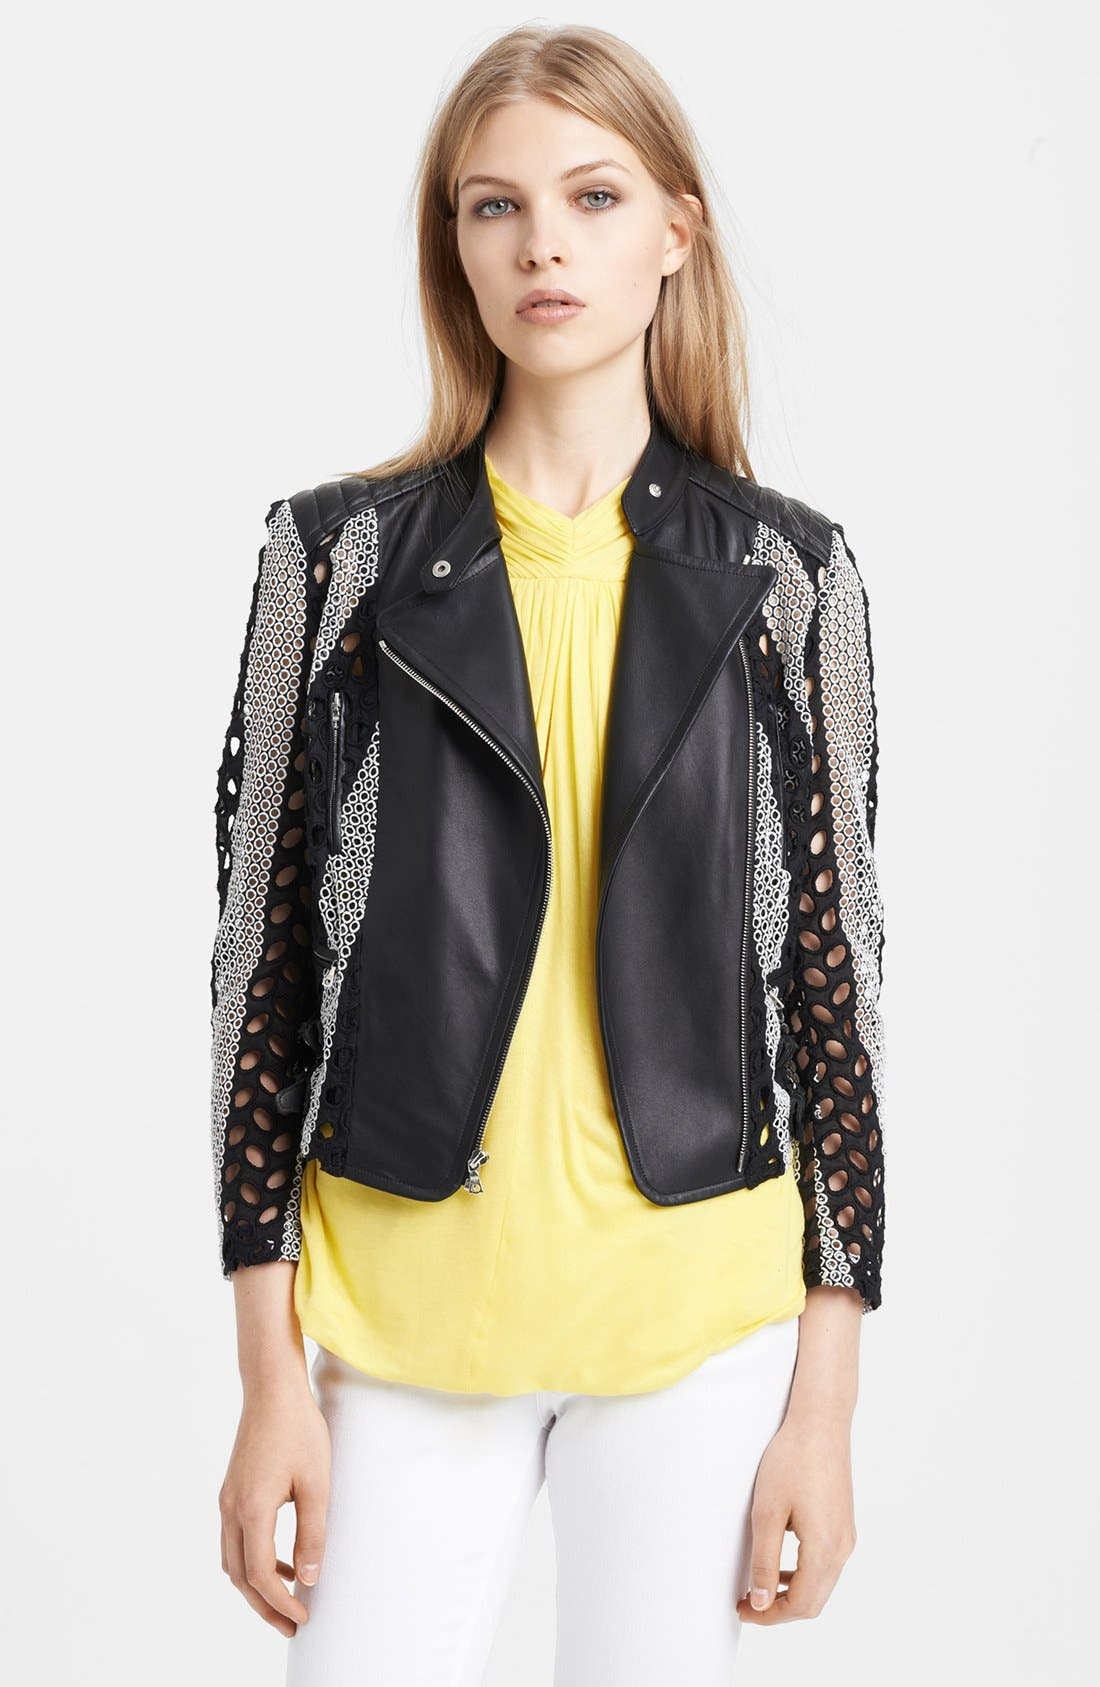 Alternate Image 1 Selected - Yigal Azrouël Cotton Eyelet & Leather Moto Jacket